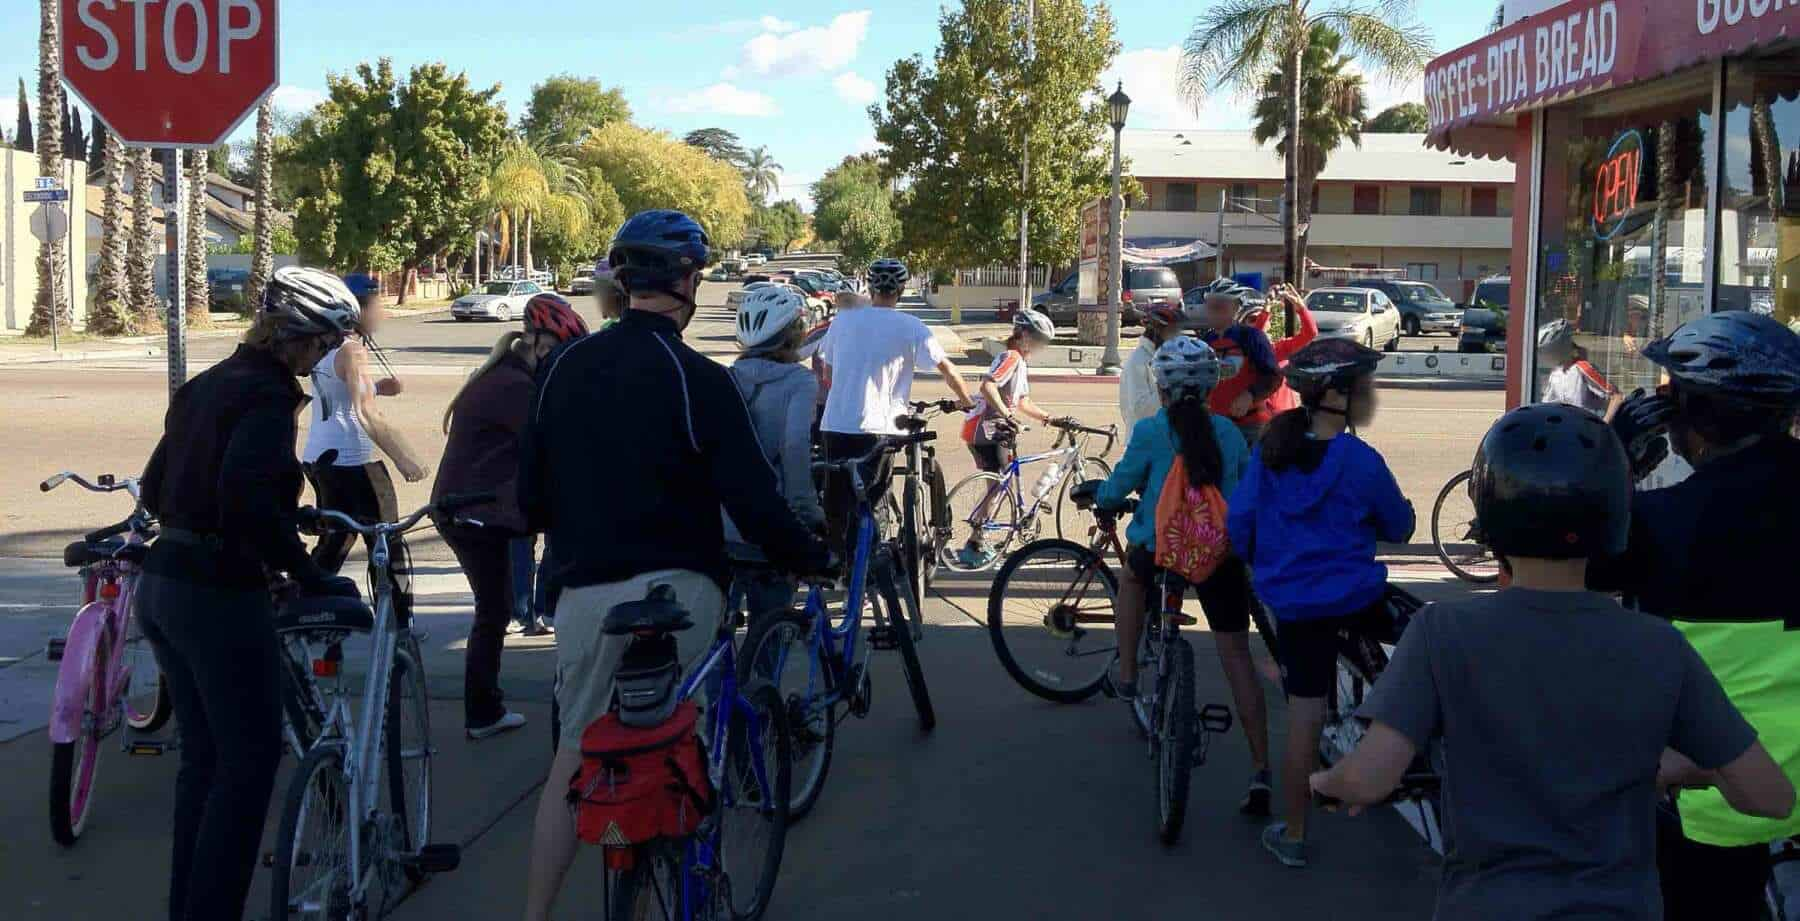 A mix of 15 adults & children stop during a bike ride to shop at a corner market.